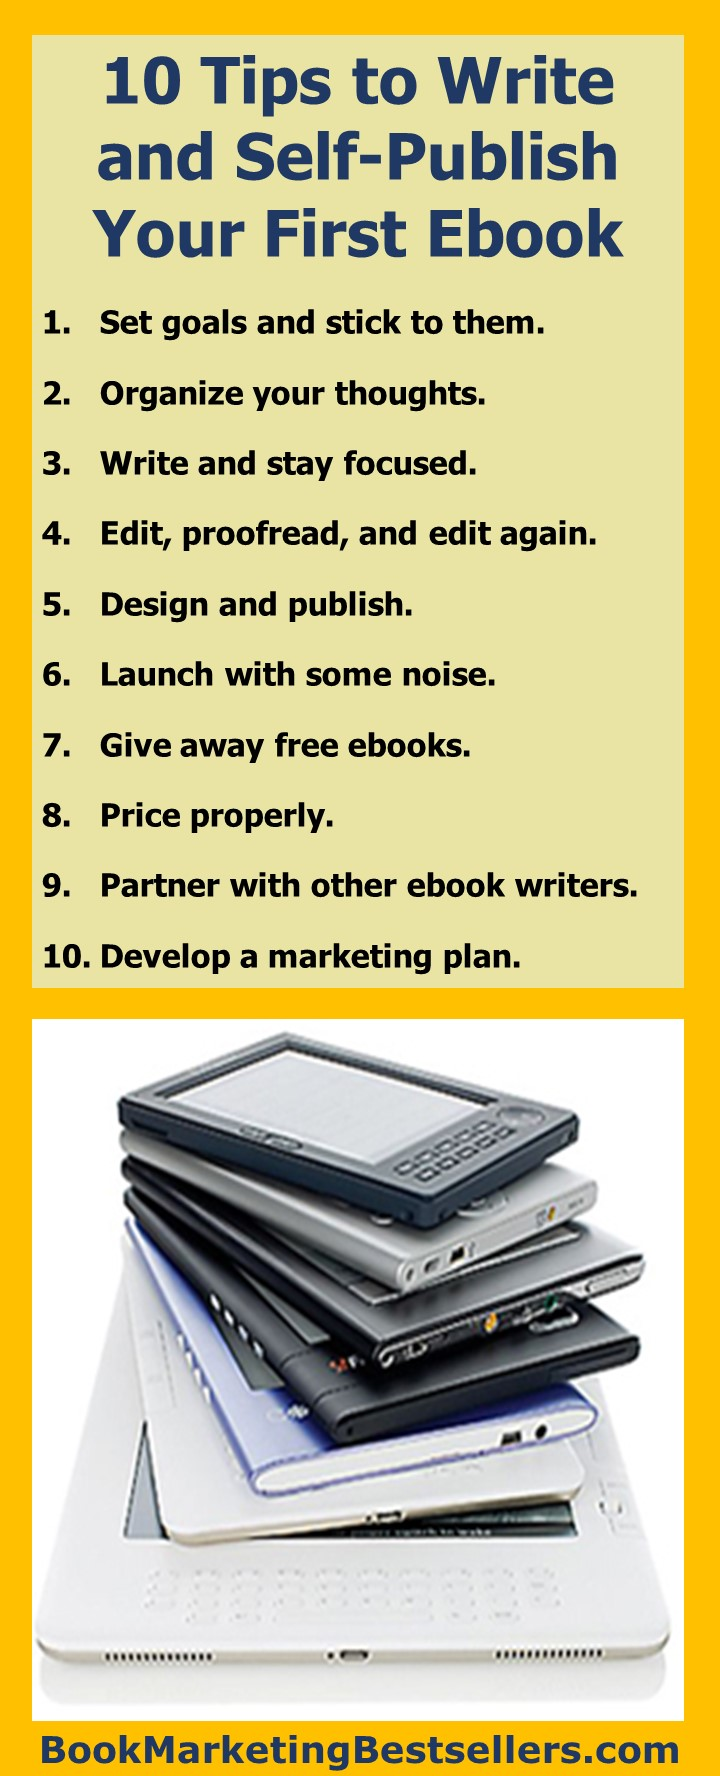 10 tips to write and selfpublish your first ebook  book